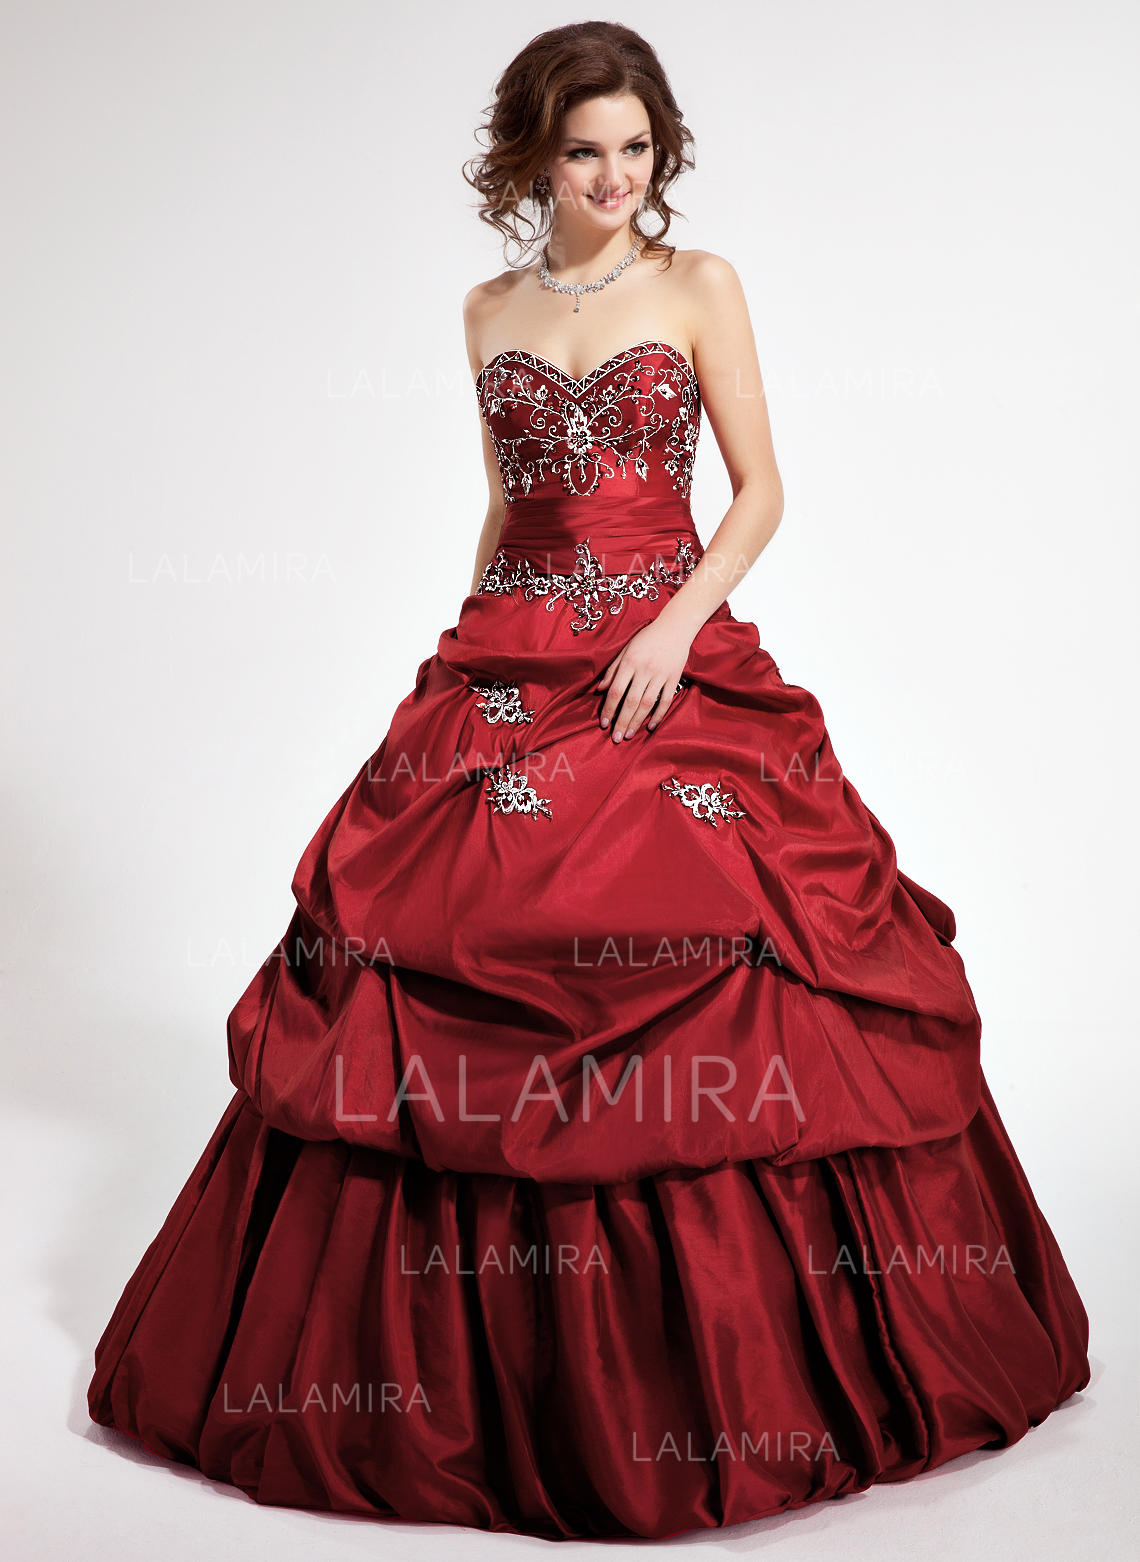 8d713b4fcad Ball-Gown Taffeta Prom Dresses Fashion Floor-Length Sweetheart Sleeveless  (018135455). Loading zoom